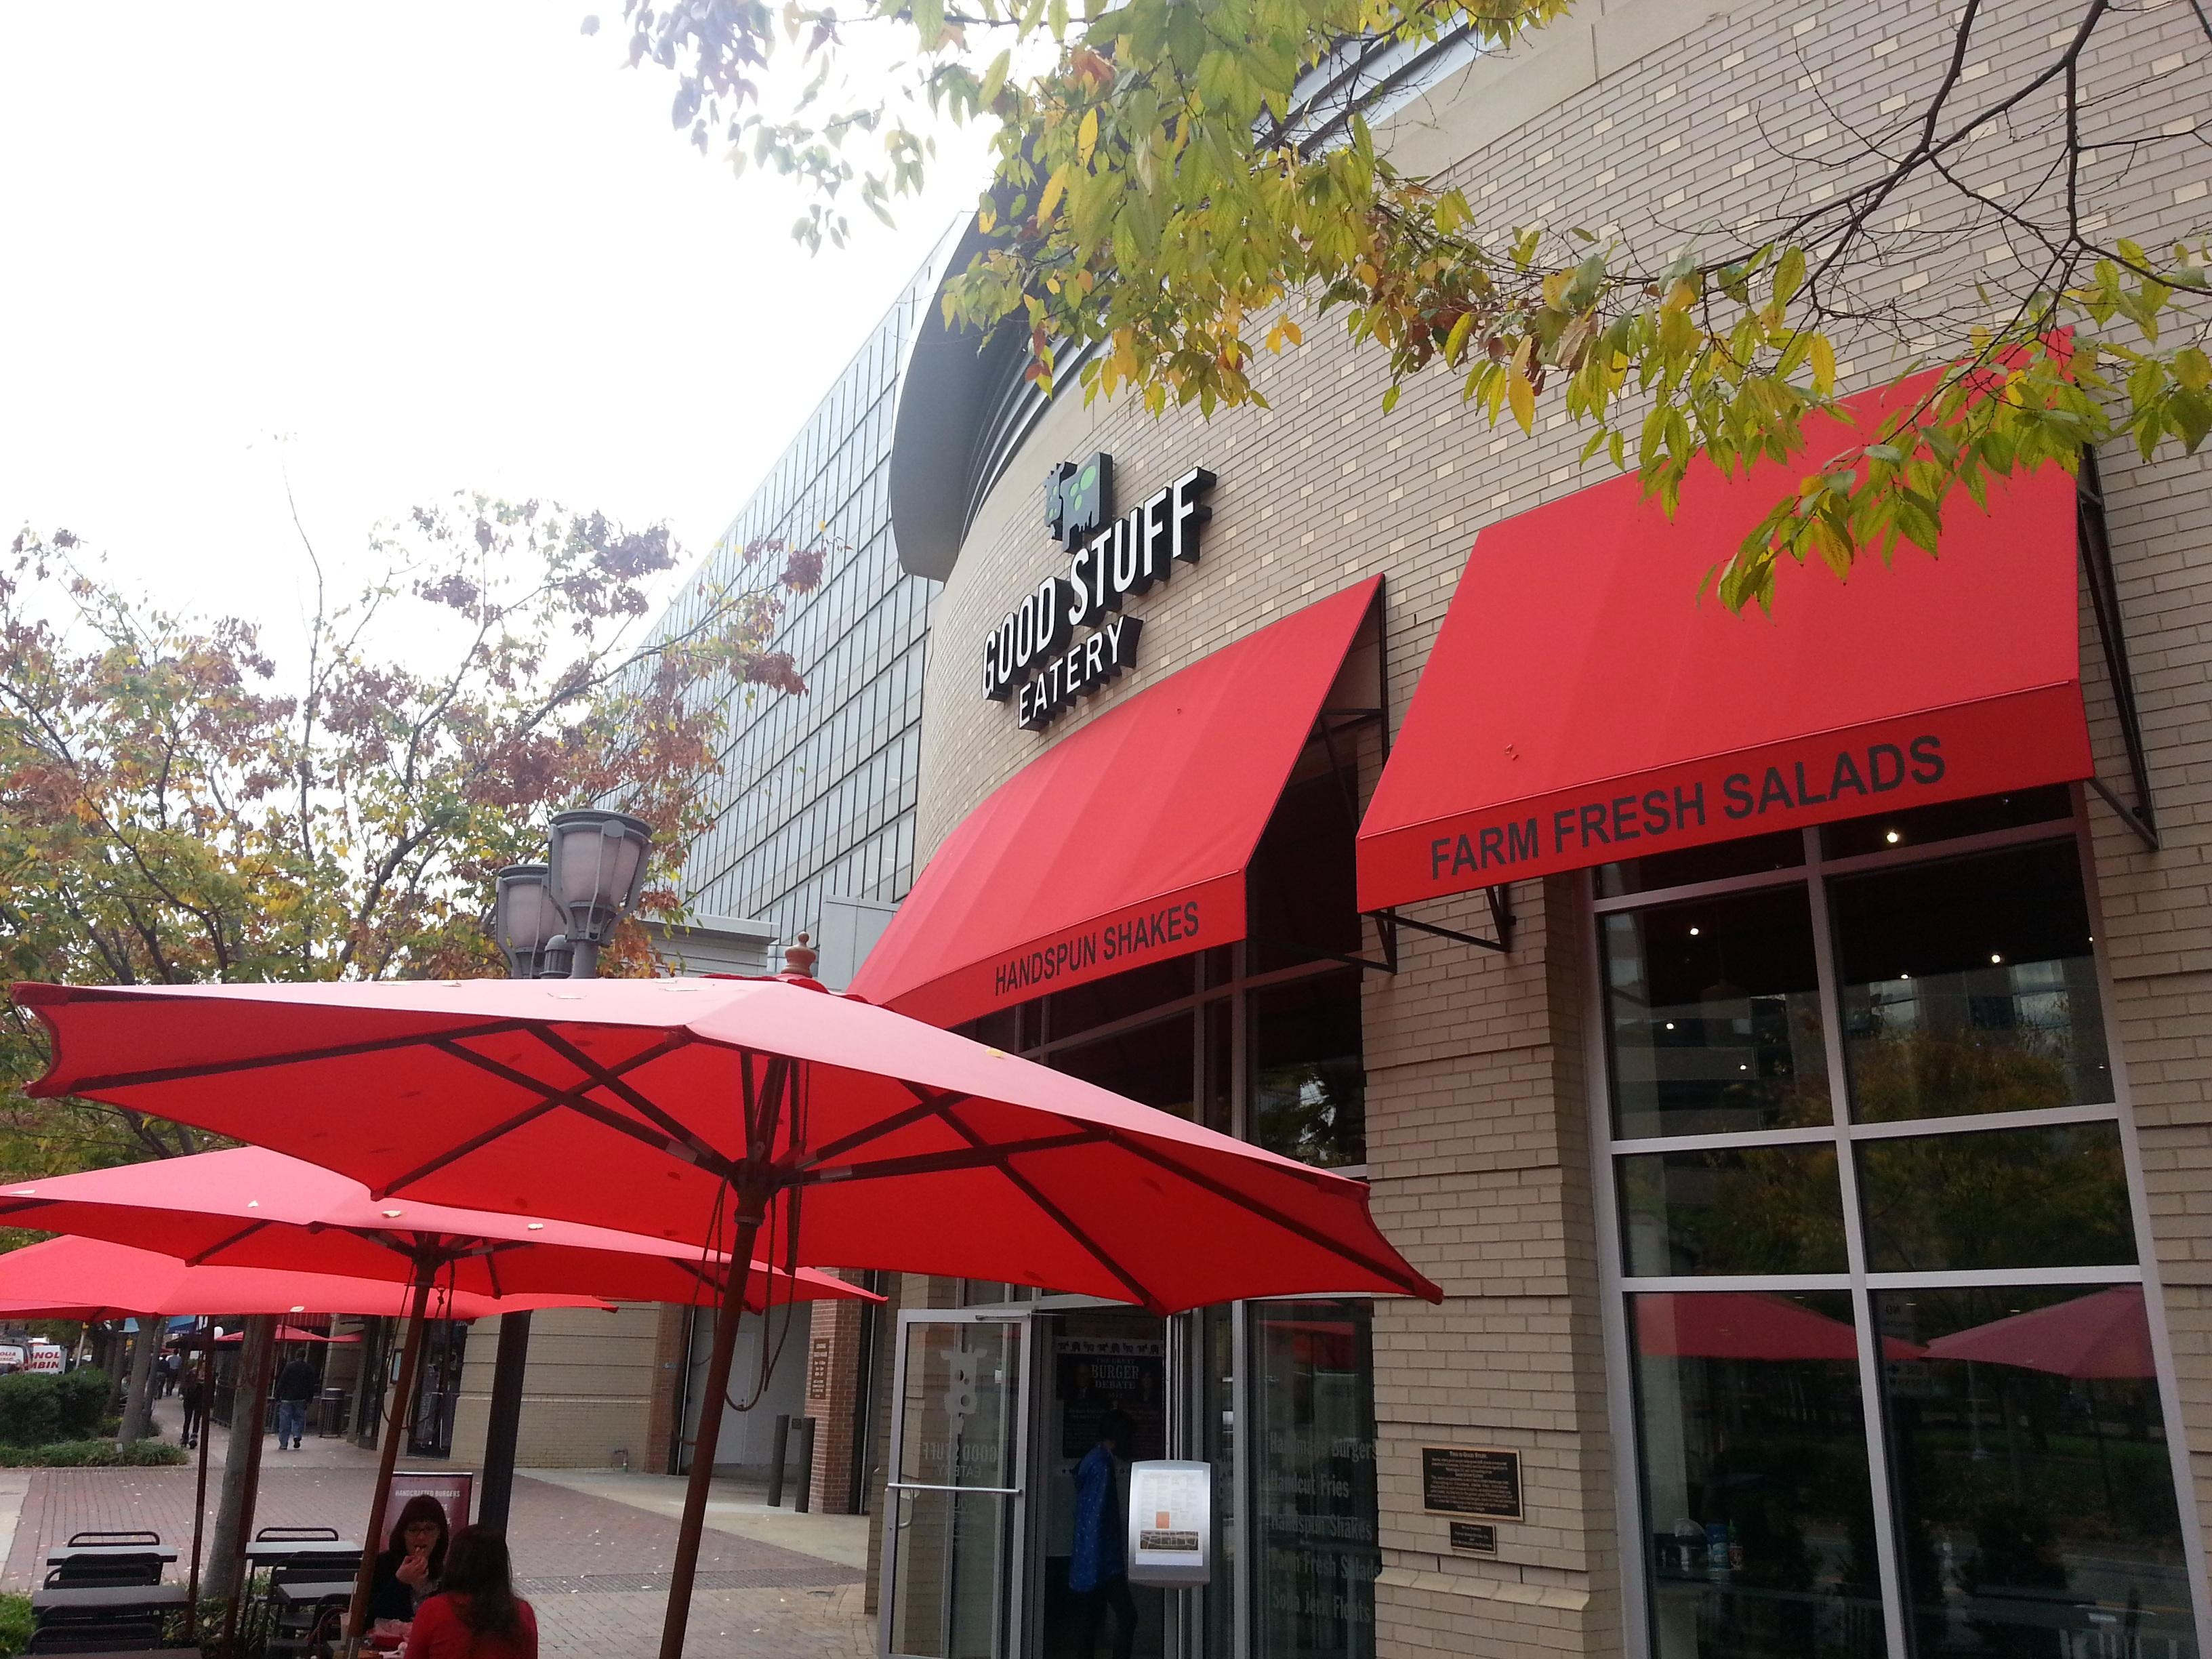 Good Stuff Eatery front door